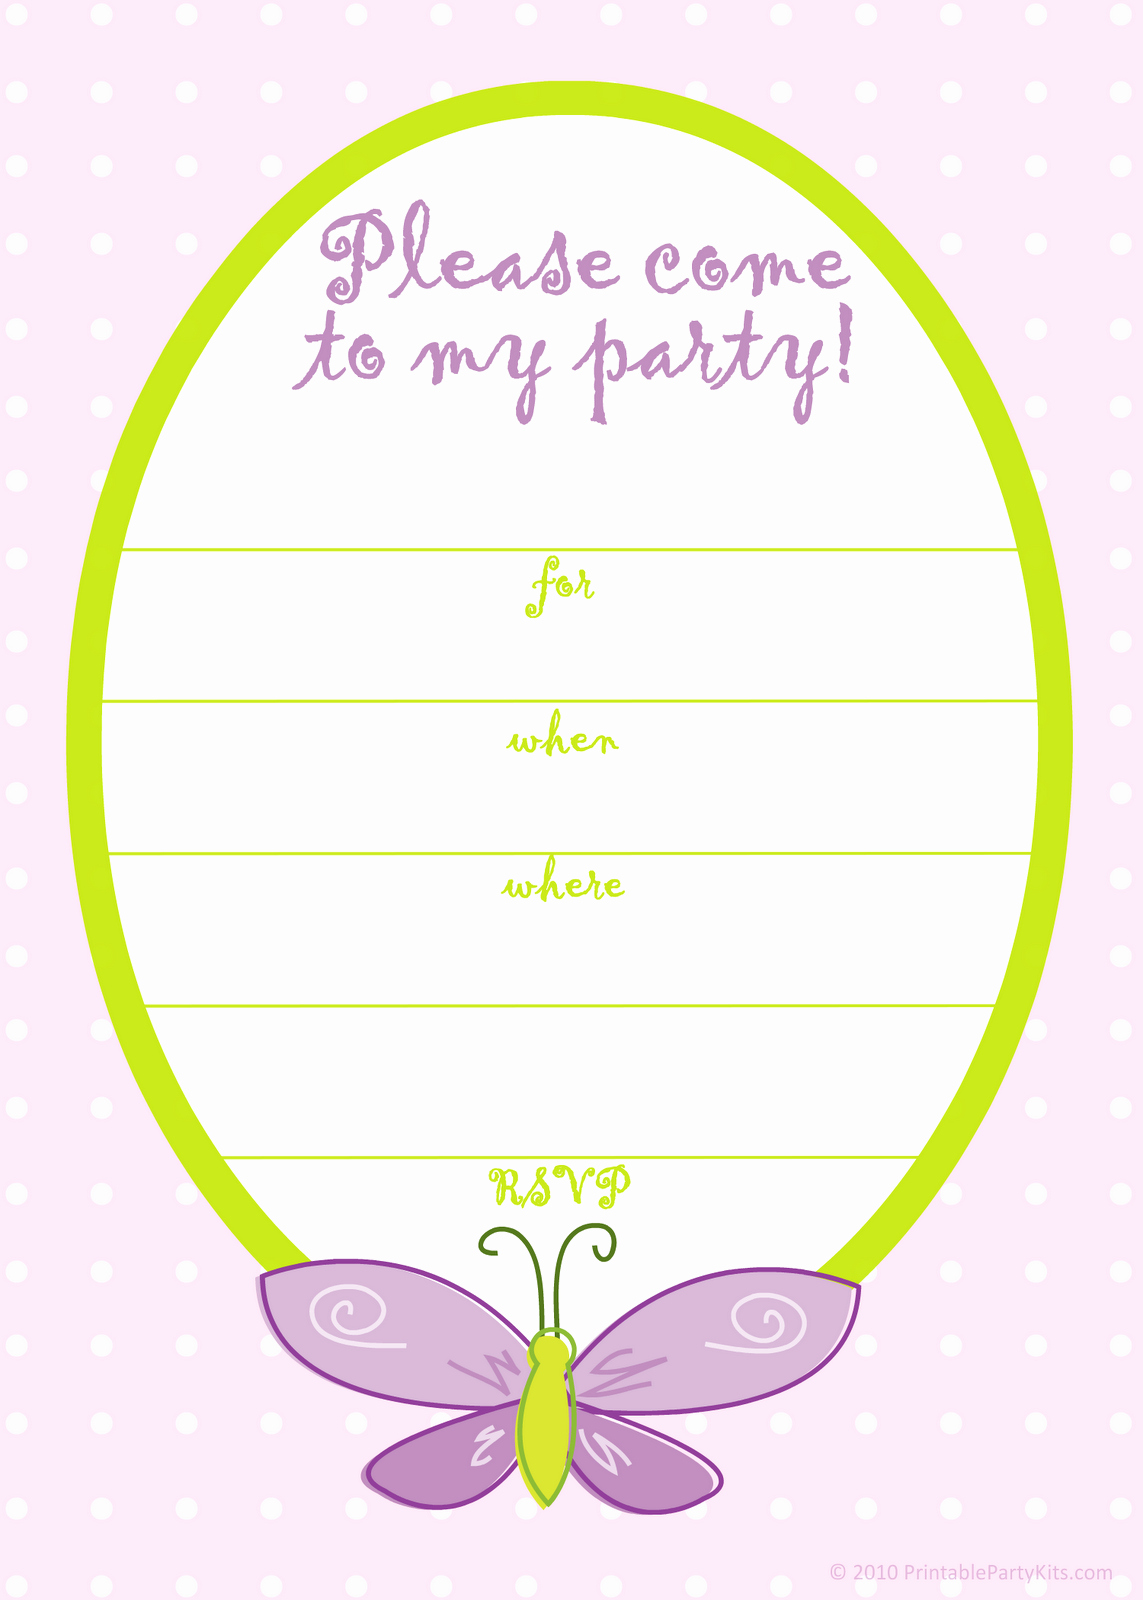 Party Invitation Template Free Fresh Free Printable Party Invitations Free Pink butterfly